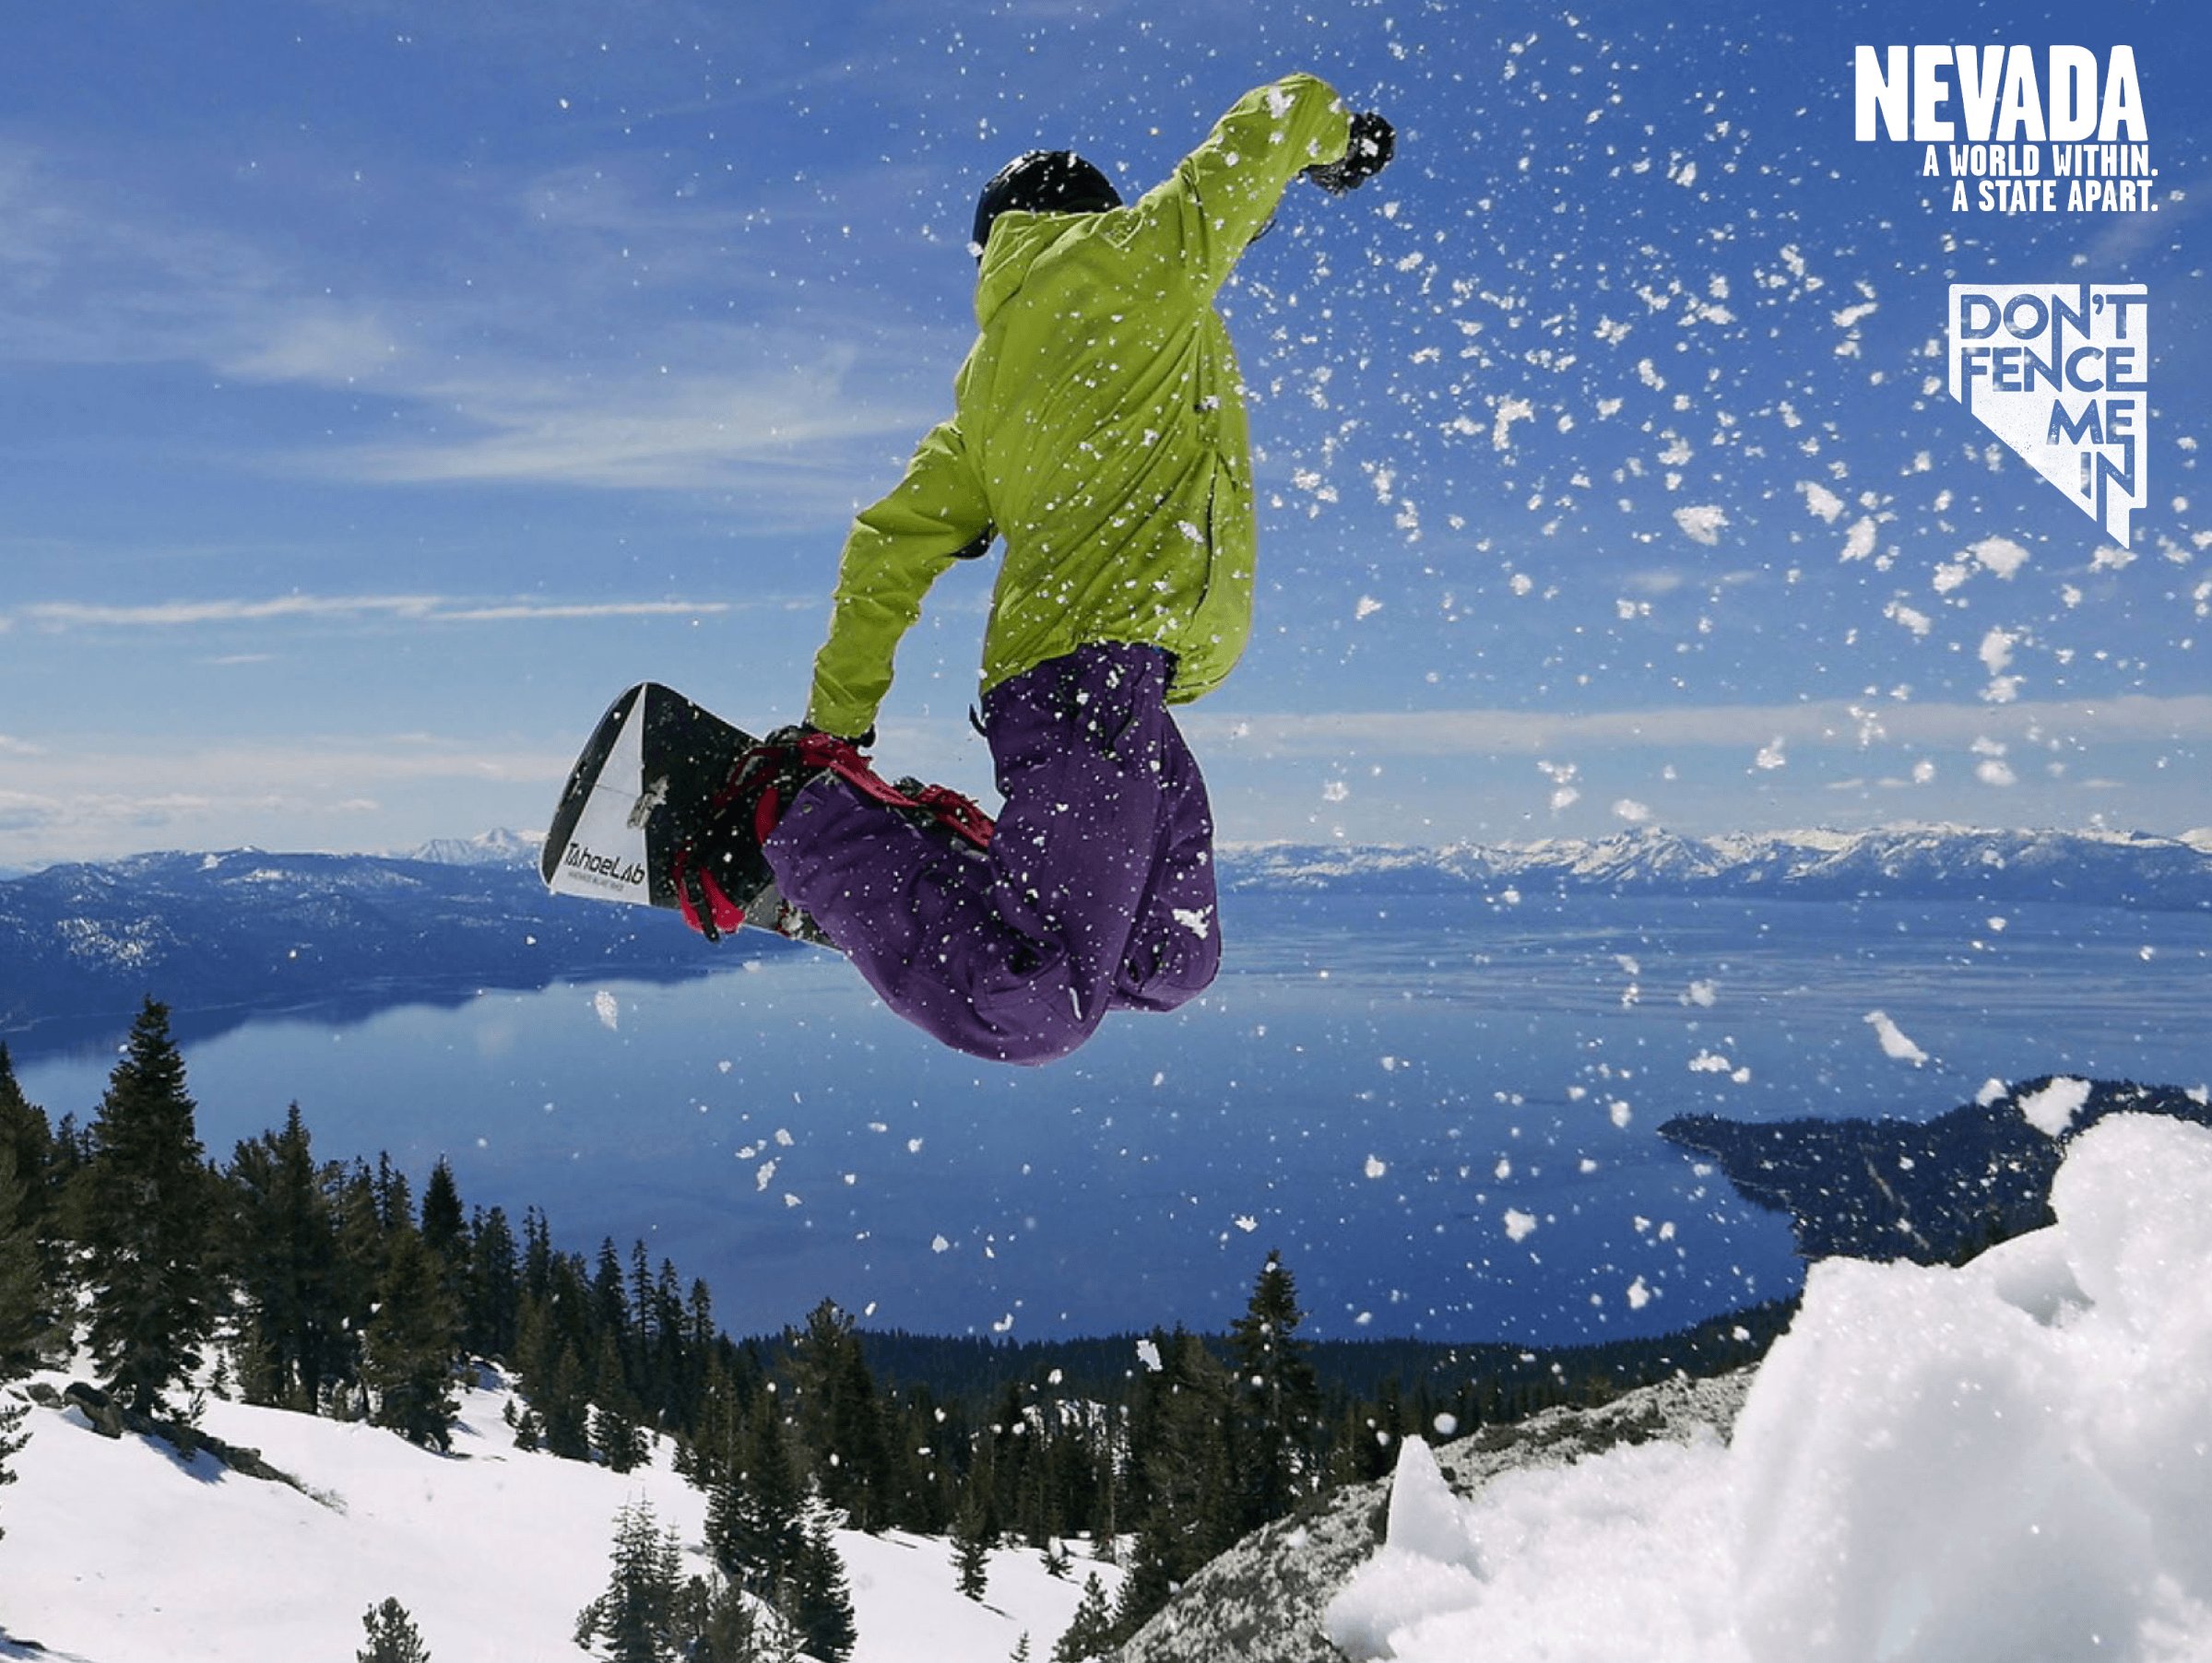 Win a 7-night adventure to Nevada for two, staying in Lake Tahoe Hard Rock Hotel